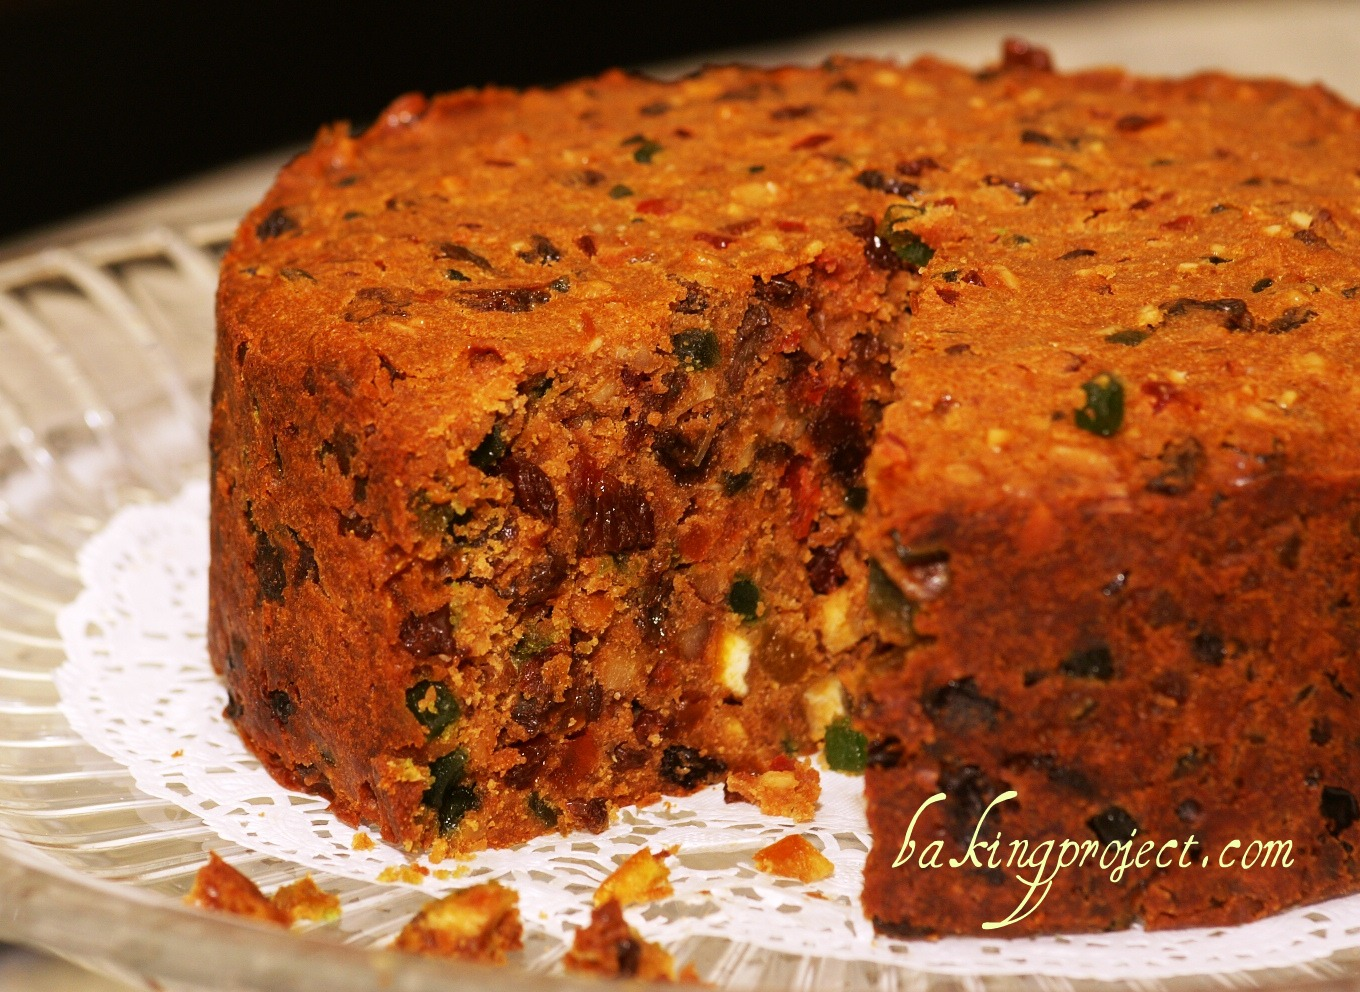 Baking a rich fruit cake